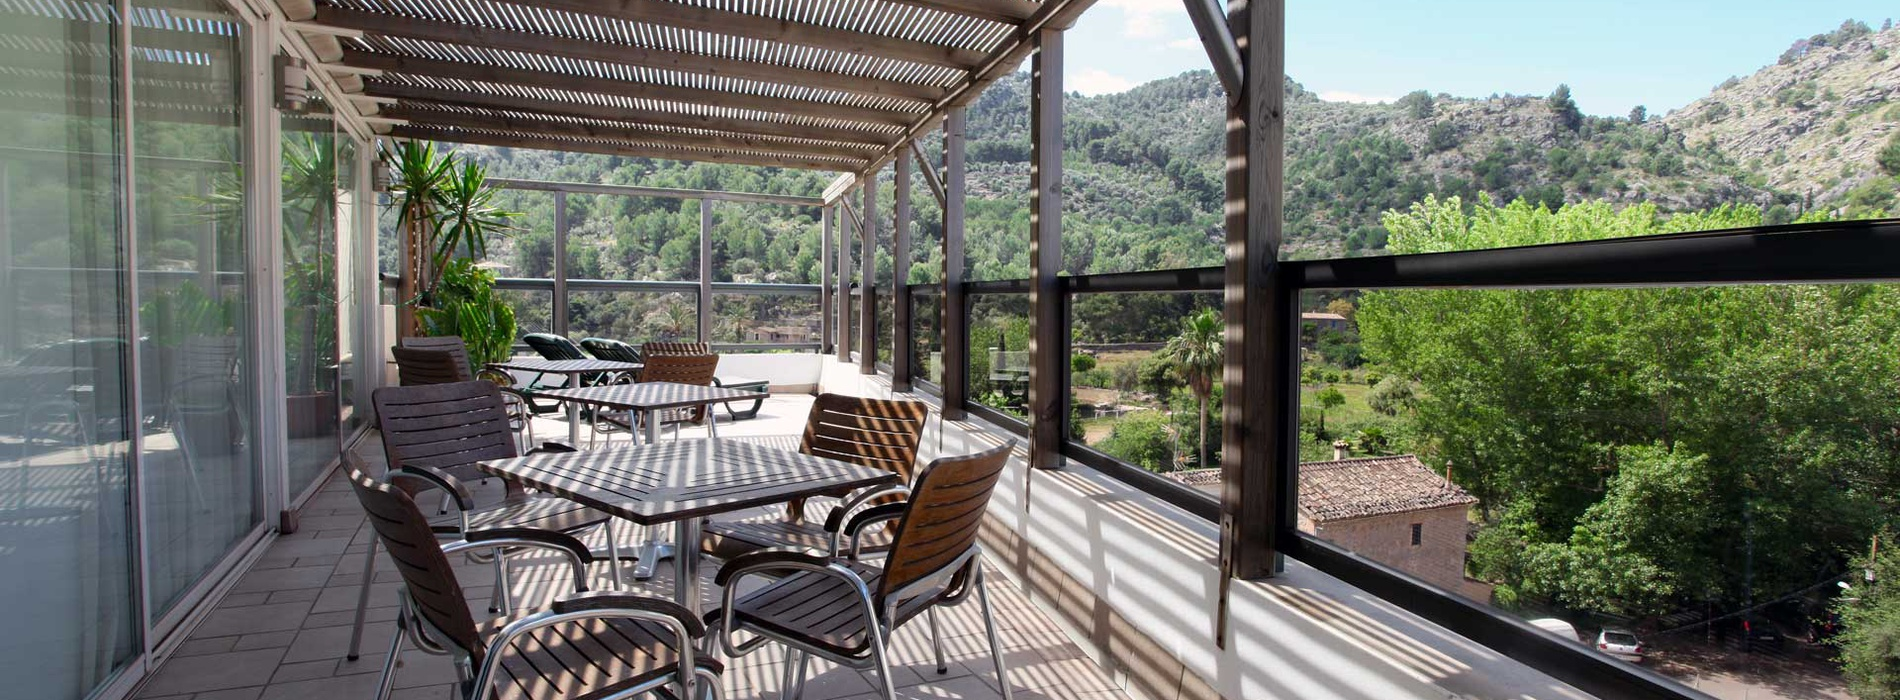 Hotel with views in Soller